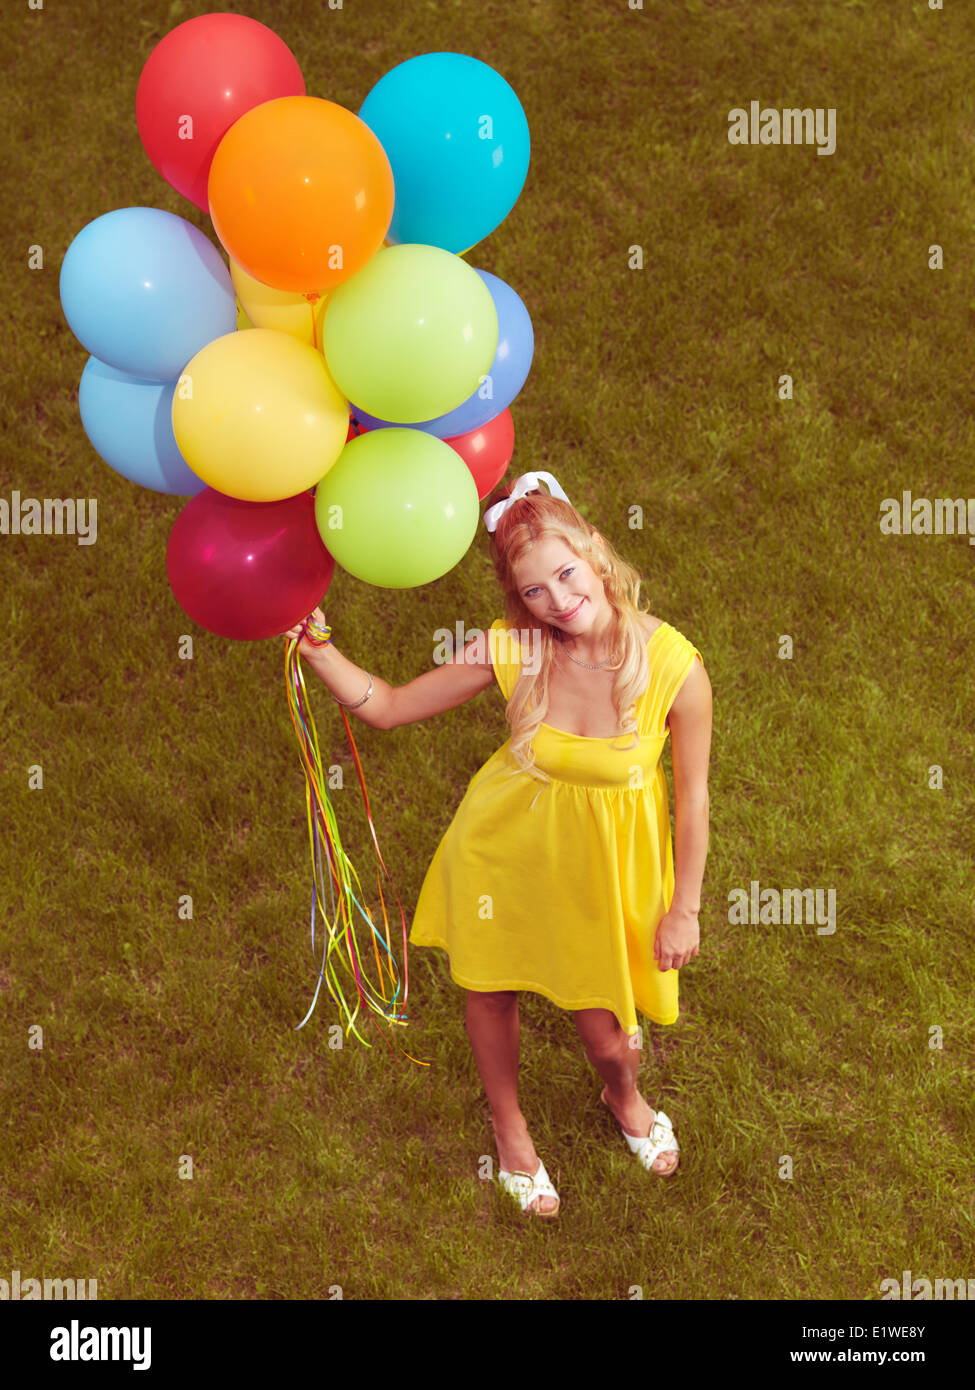 Young smiling woman standing on grass with a bunch of colorful helium balloons in her hand. Retro stylized image. - Stock Image